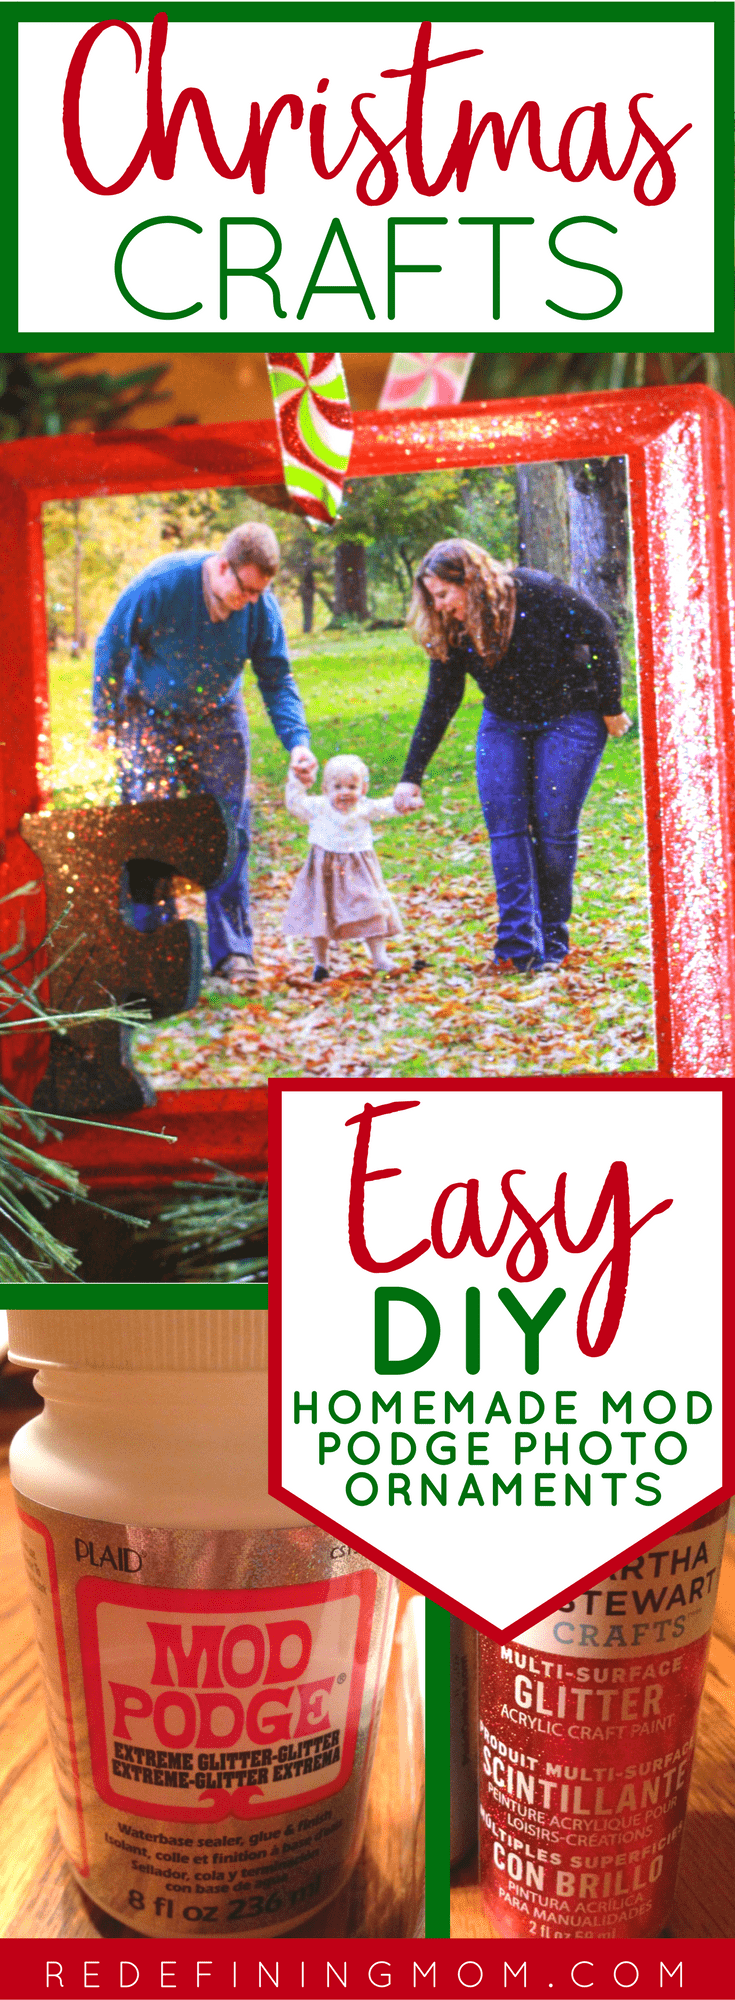 Christmas crafts, easy DIY homemade mod podge photo ornaments. Create a family tradition every Christmas. In this tutorial, I show you how to make mod podge photo ornaments for Christmas. Mod podge crafts, mod podge ornaments, photo ornaments.